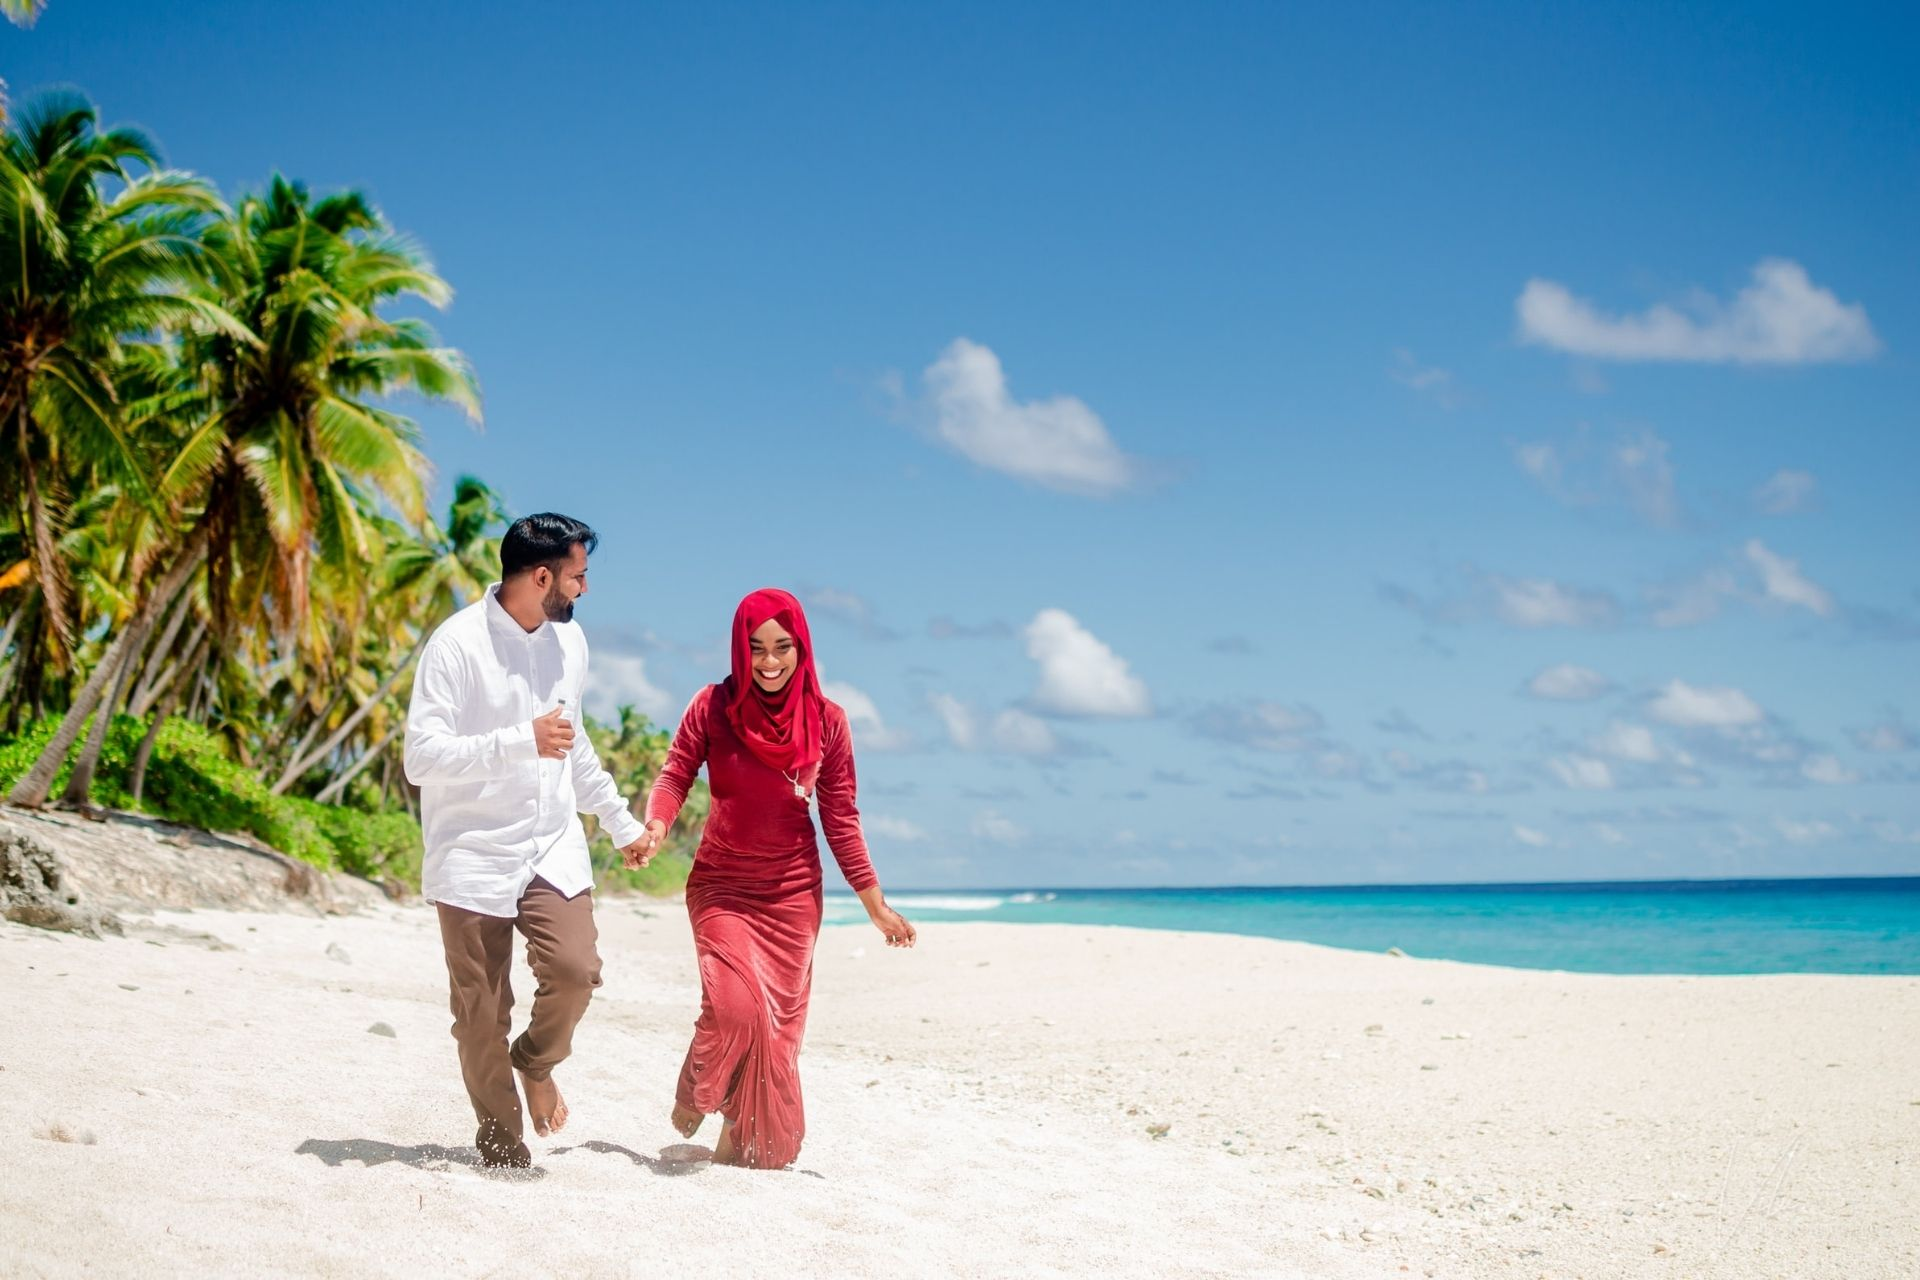 People of the Maldives, Culture & Traditions